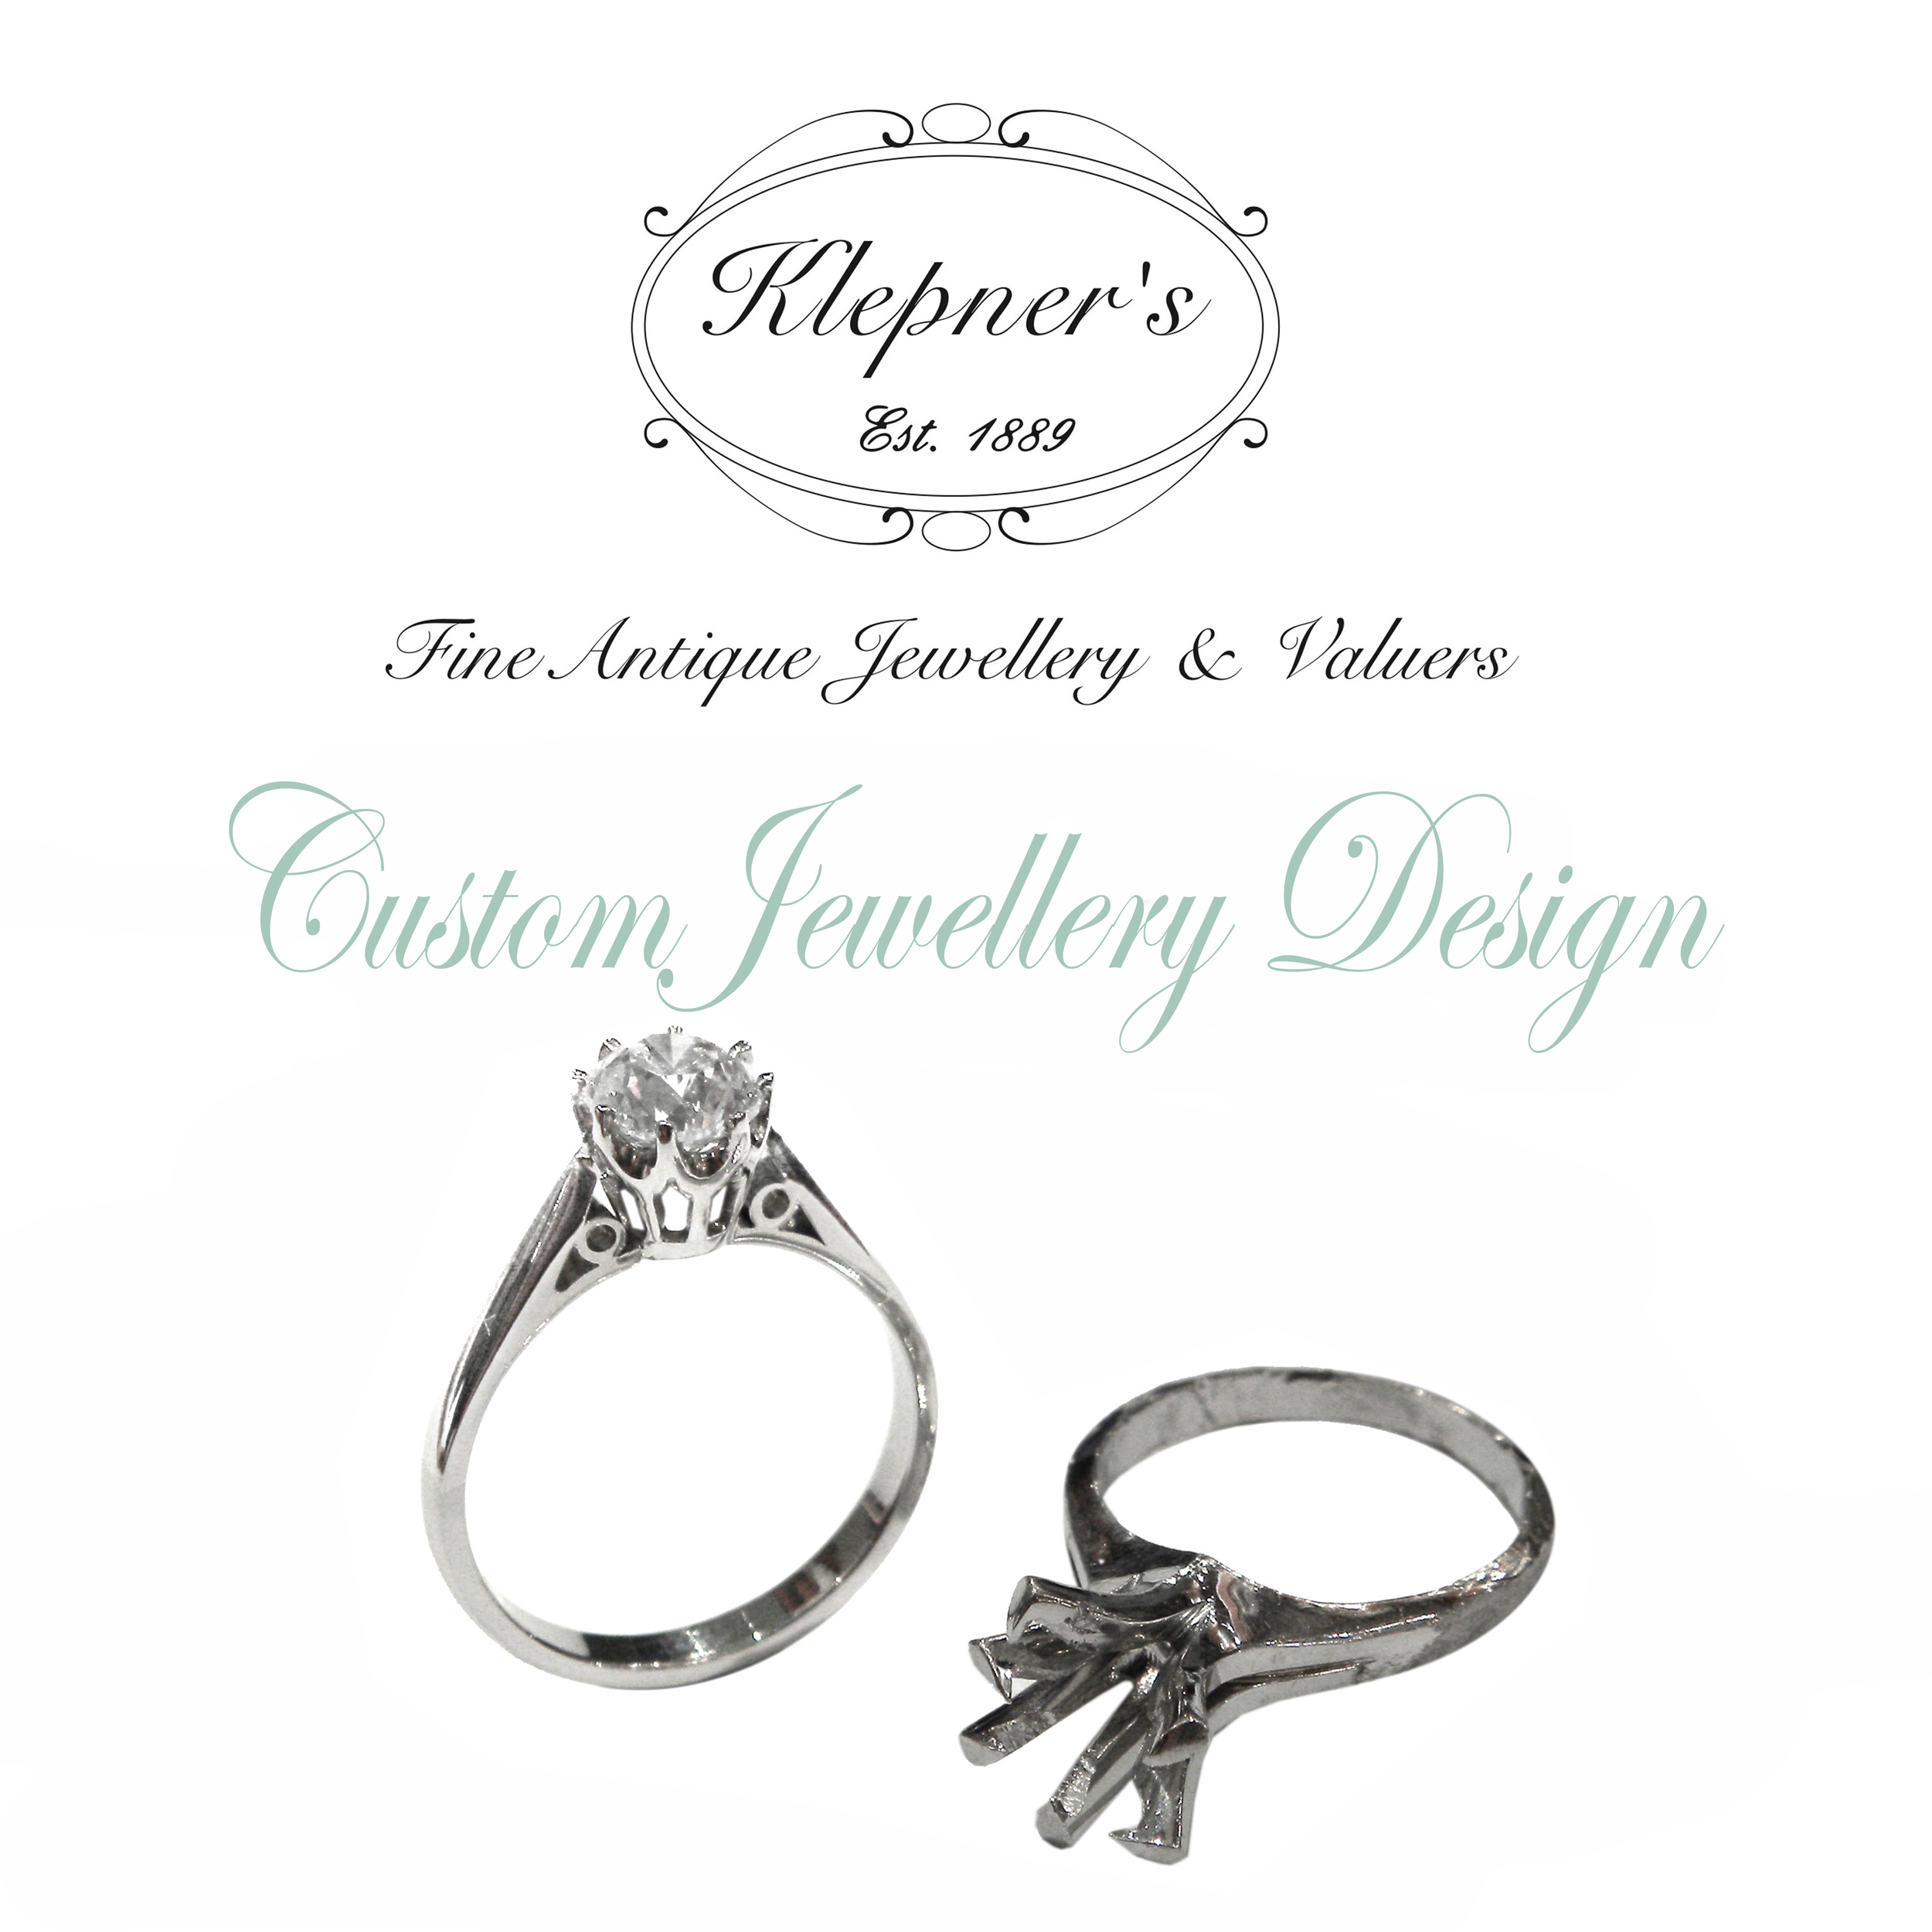 Click to find out more about our award winning jewellery design services